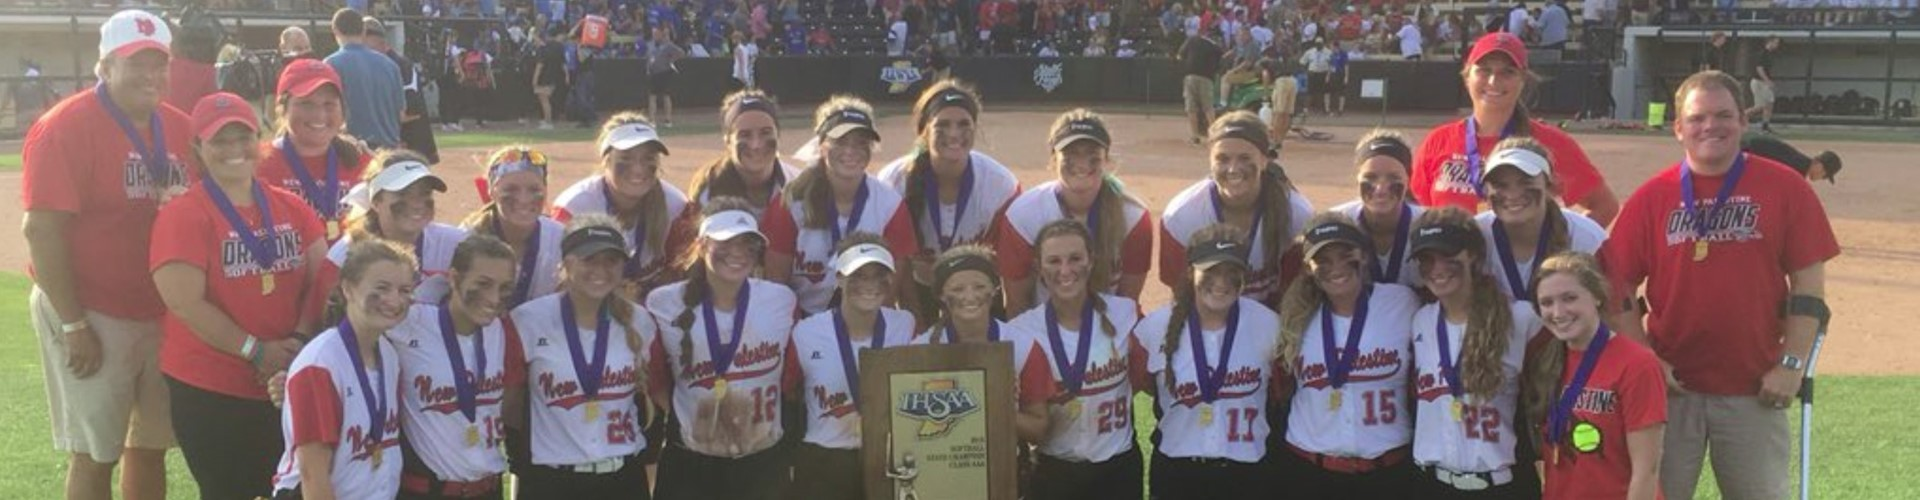 The New Palestine High School Softball team celebrating a Class 3A state championship.